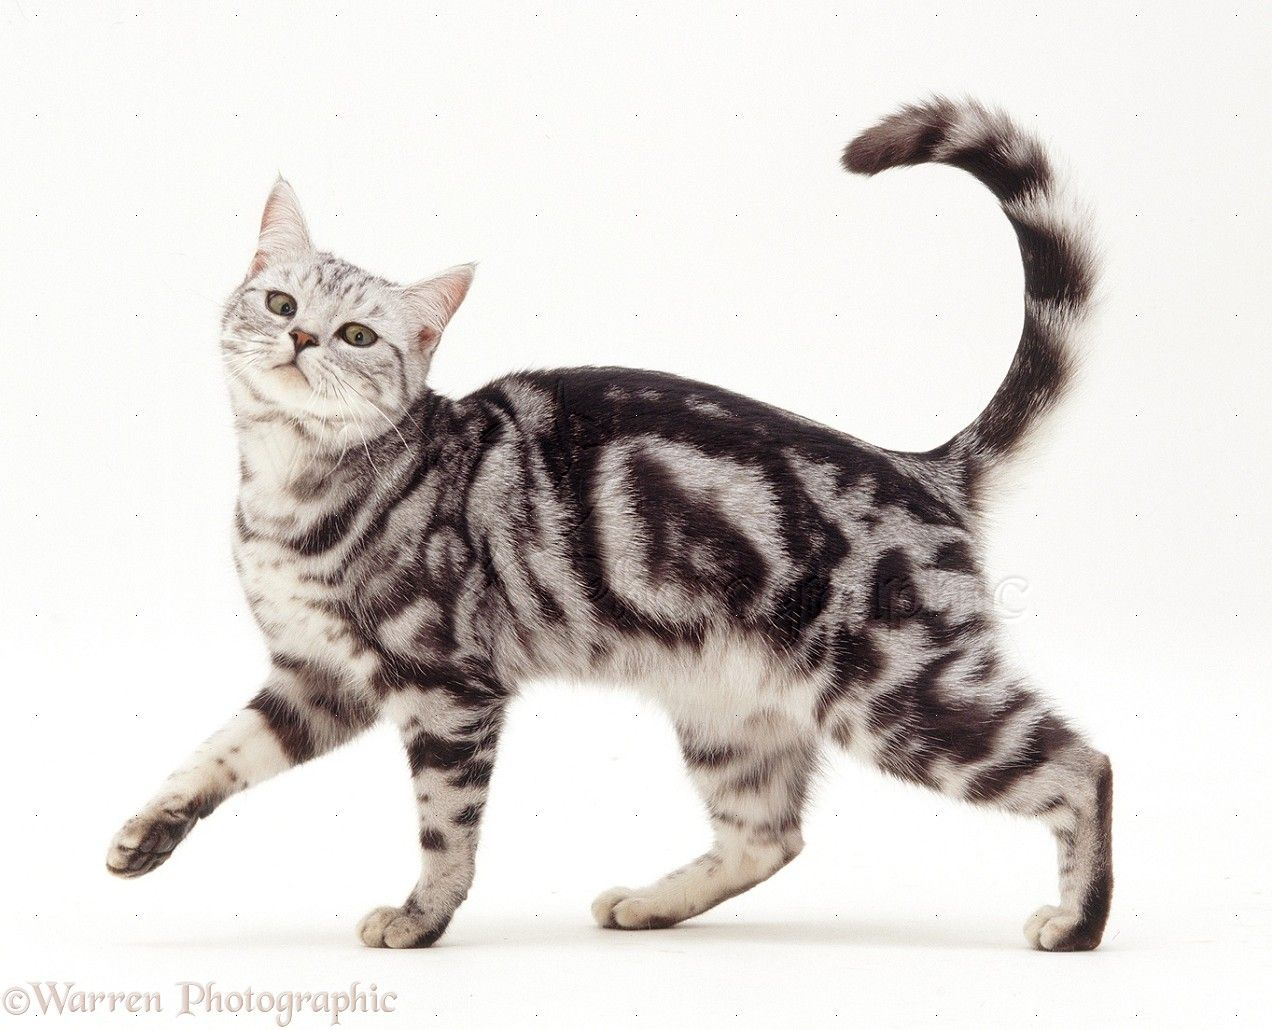 A Tabby Also Known As Grey Tiger Is Any Domestic Cat That Has A